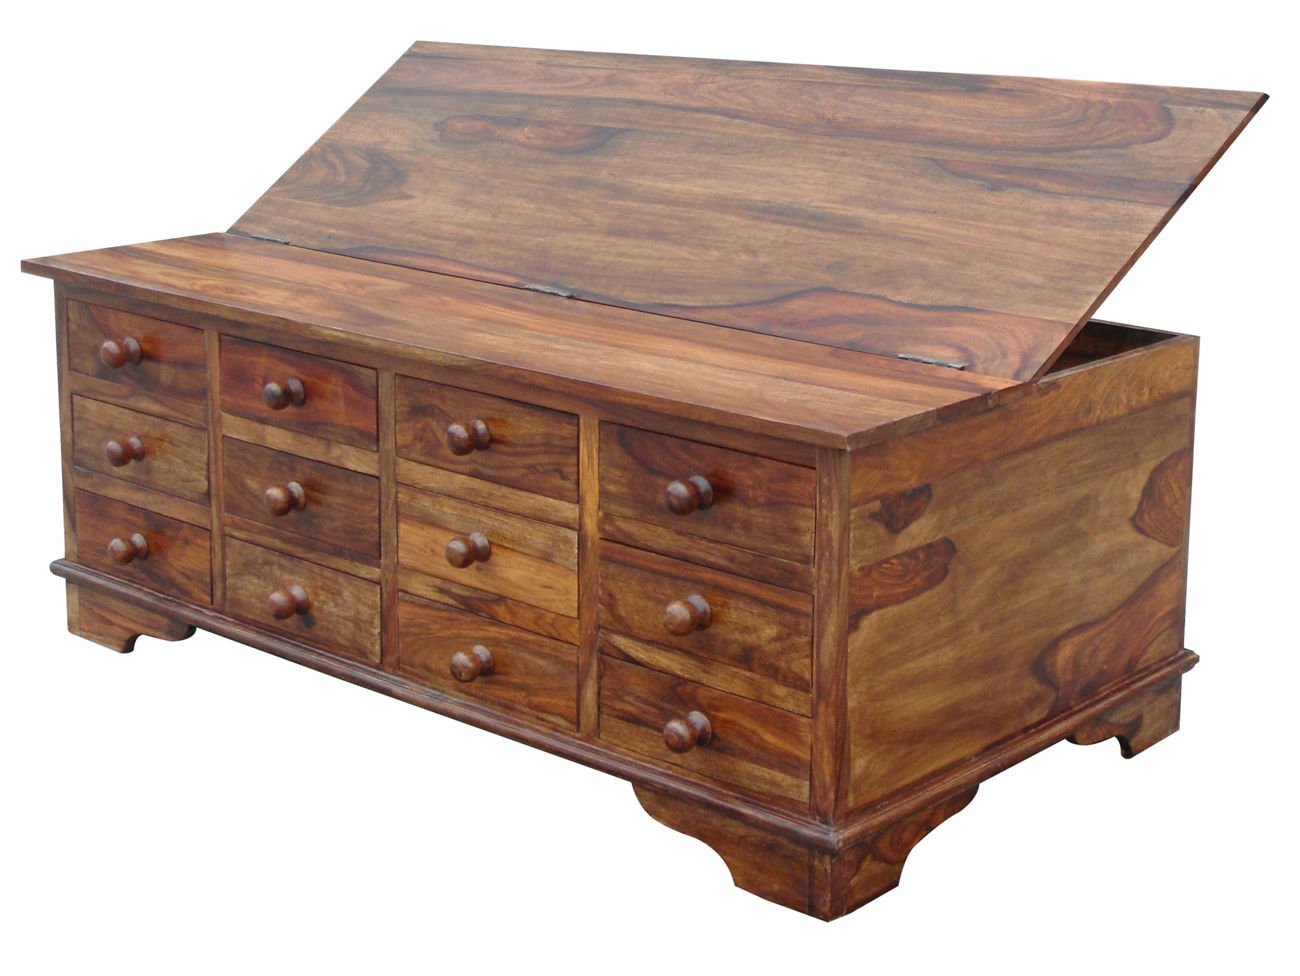 SOLID SHEESHAM WOOD 12 DRAWER COFFEE TABLE TRUNK CHEST  Amazon co uk   Kitchen   Home. SOLID SHEESHAM WOOD 12 DRAWER COFFEE TABLE TRUNK CHEST  Amazon co